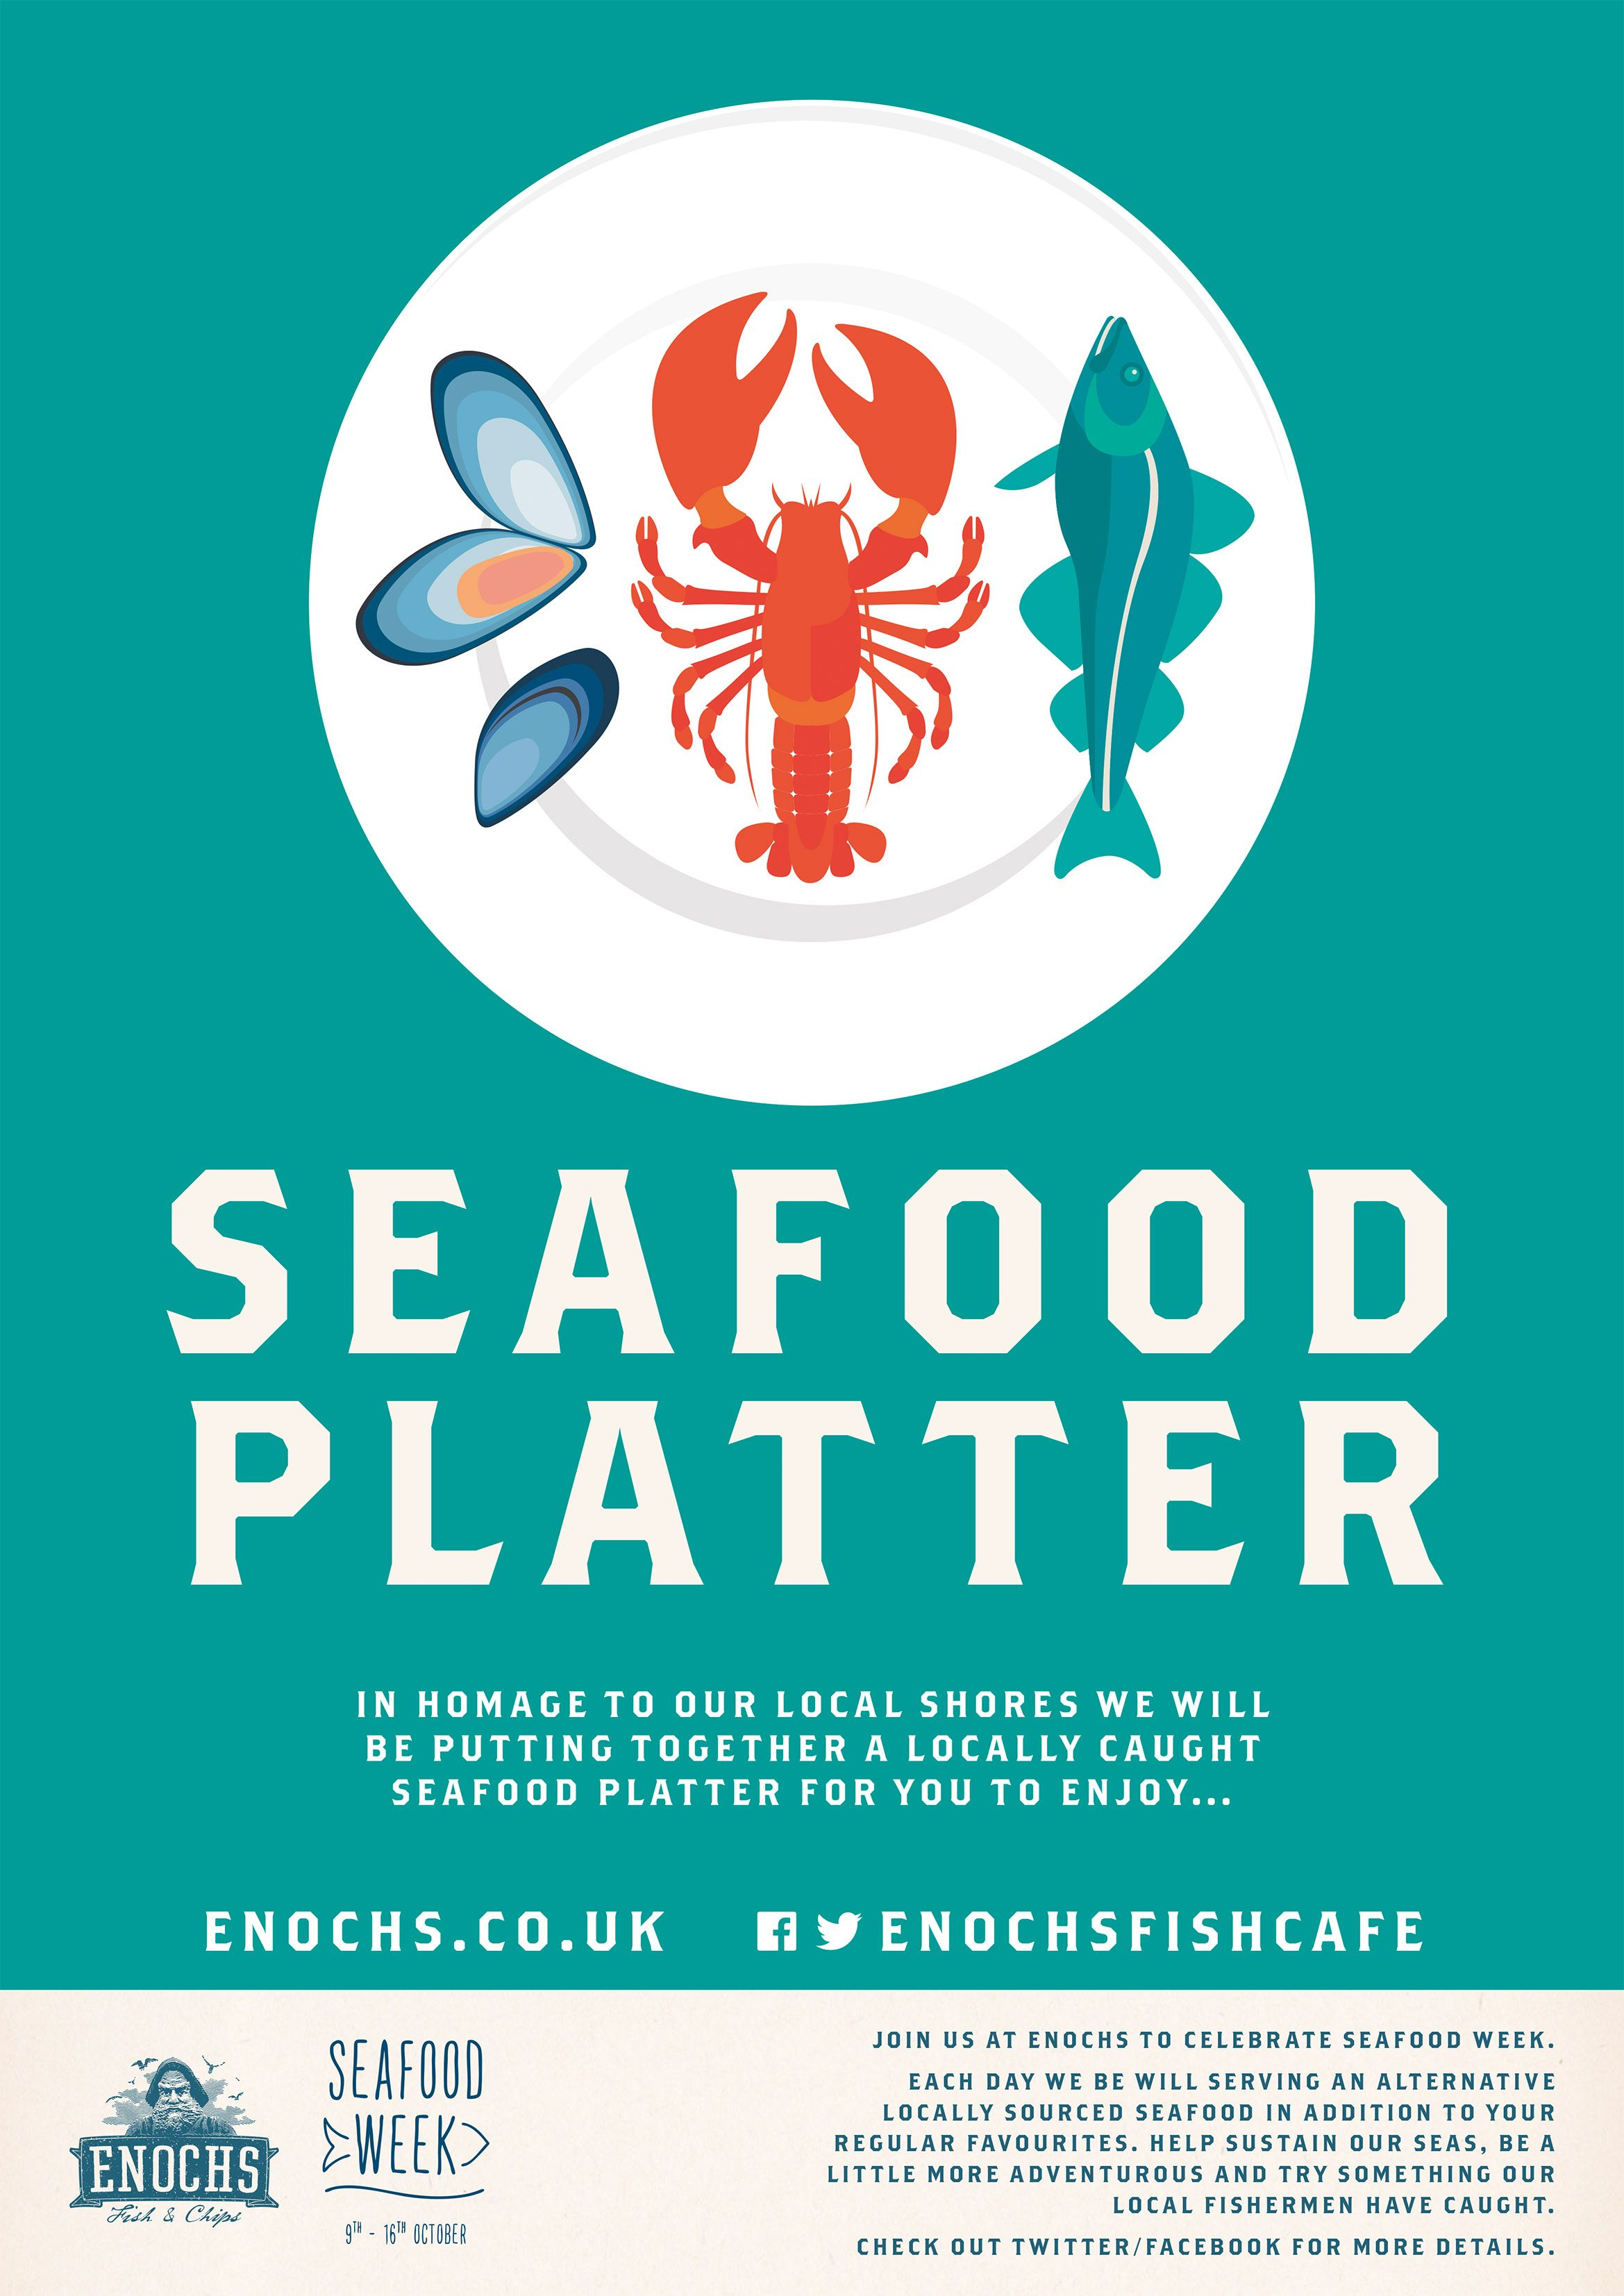 Zoology poster design - Series Of Poster Illustrations For Seafood Week Promoting Enochs Fish And Chip Cafe Illustration